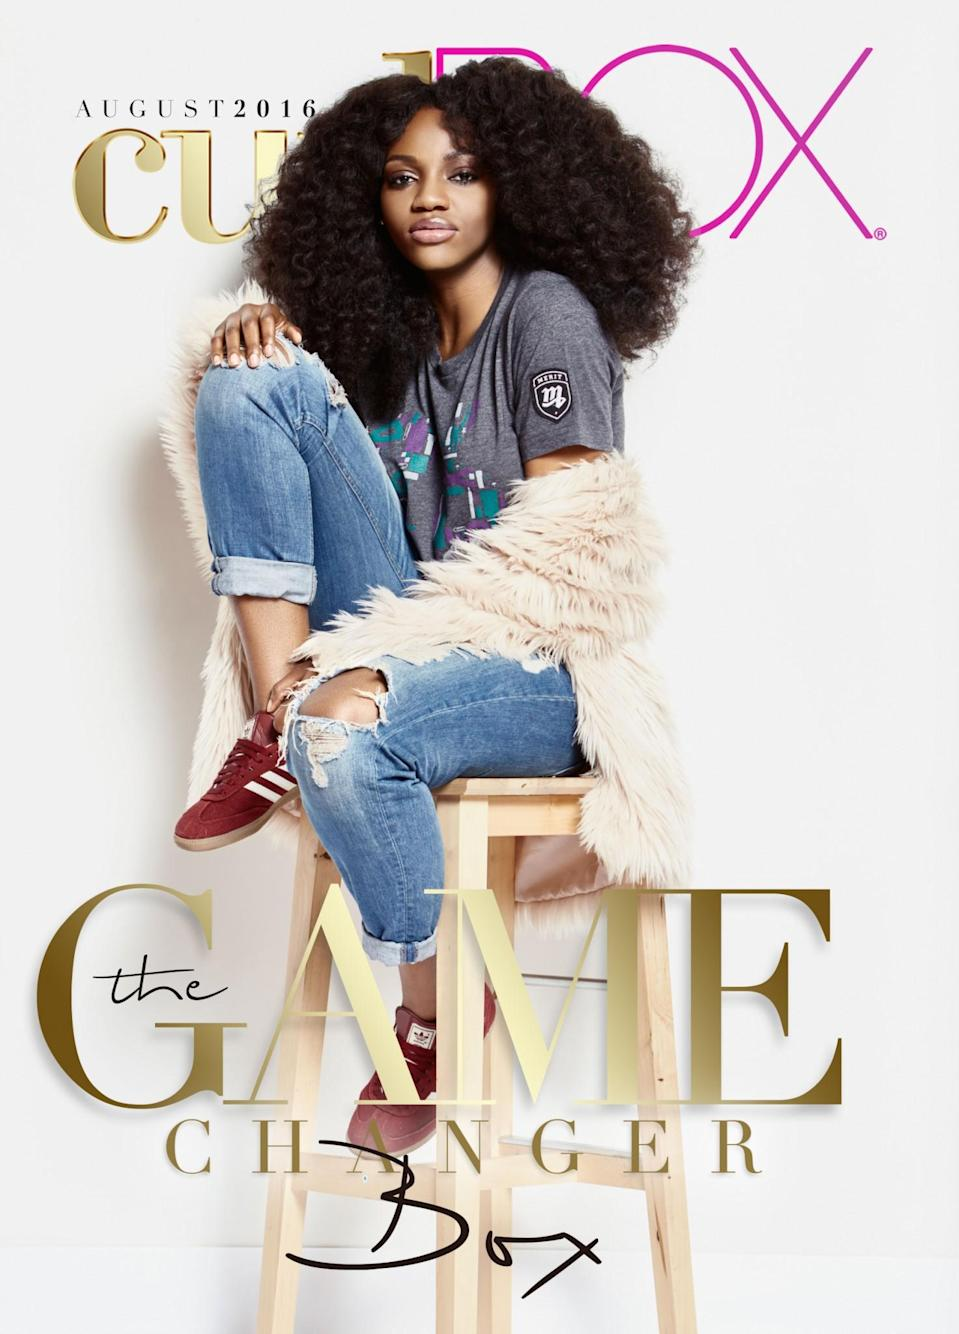 "<p>""Since 2011, curlBOX has been a force in the haircare and beauty category by providing a unique service of content, media, and products to a growing audience that is continuing to reflect the ethos of the mainstream culture – beauty comes in all shapes, colors and sizes. As a result of our strong focus on our brand mission, curlBOX continues to gain traction nationwide by serving a lucrative, niche market,"" says founder and CEO of curlBox Myleik Teele. ""It has changed the way women try and purchase haircare products. Our monthly box delivers full and sample sized products designed for naturally curly hair."" Visit <a href=""http://www.curlbox.com/16/home.htm"" rel=""nofollow noopener"" target=""_blank"" data-ylk=""slk:curlBOX"" class=""link rapid-noclick-resp"">curlBOX</a> for more info. </p>"